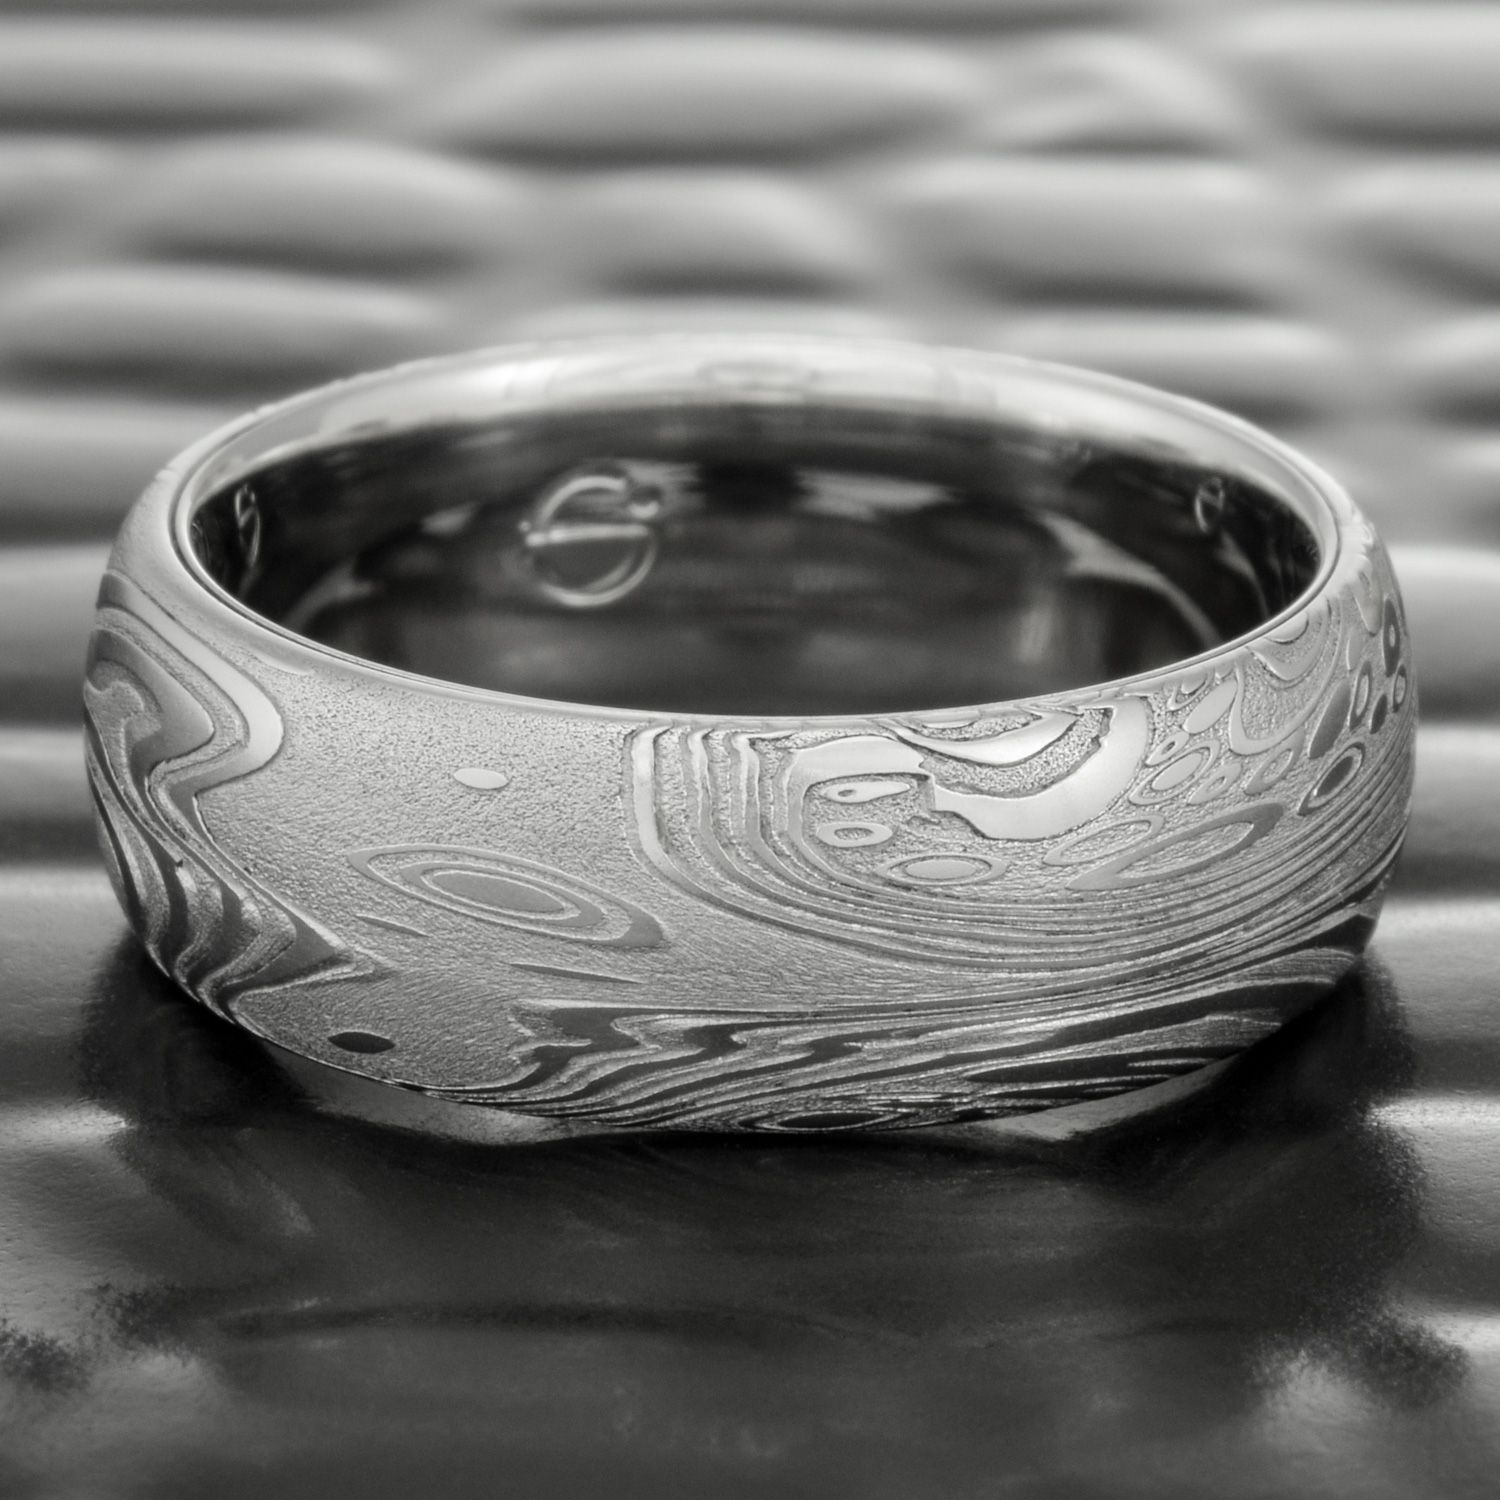 Ocean Wave Damascus Steel Wedding Band Domed With Palladium Liner Tidepools Steven Jacob Damascus Steel Wedding Band Steel Wedding Bands Steel Wedding Ring